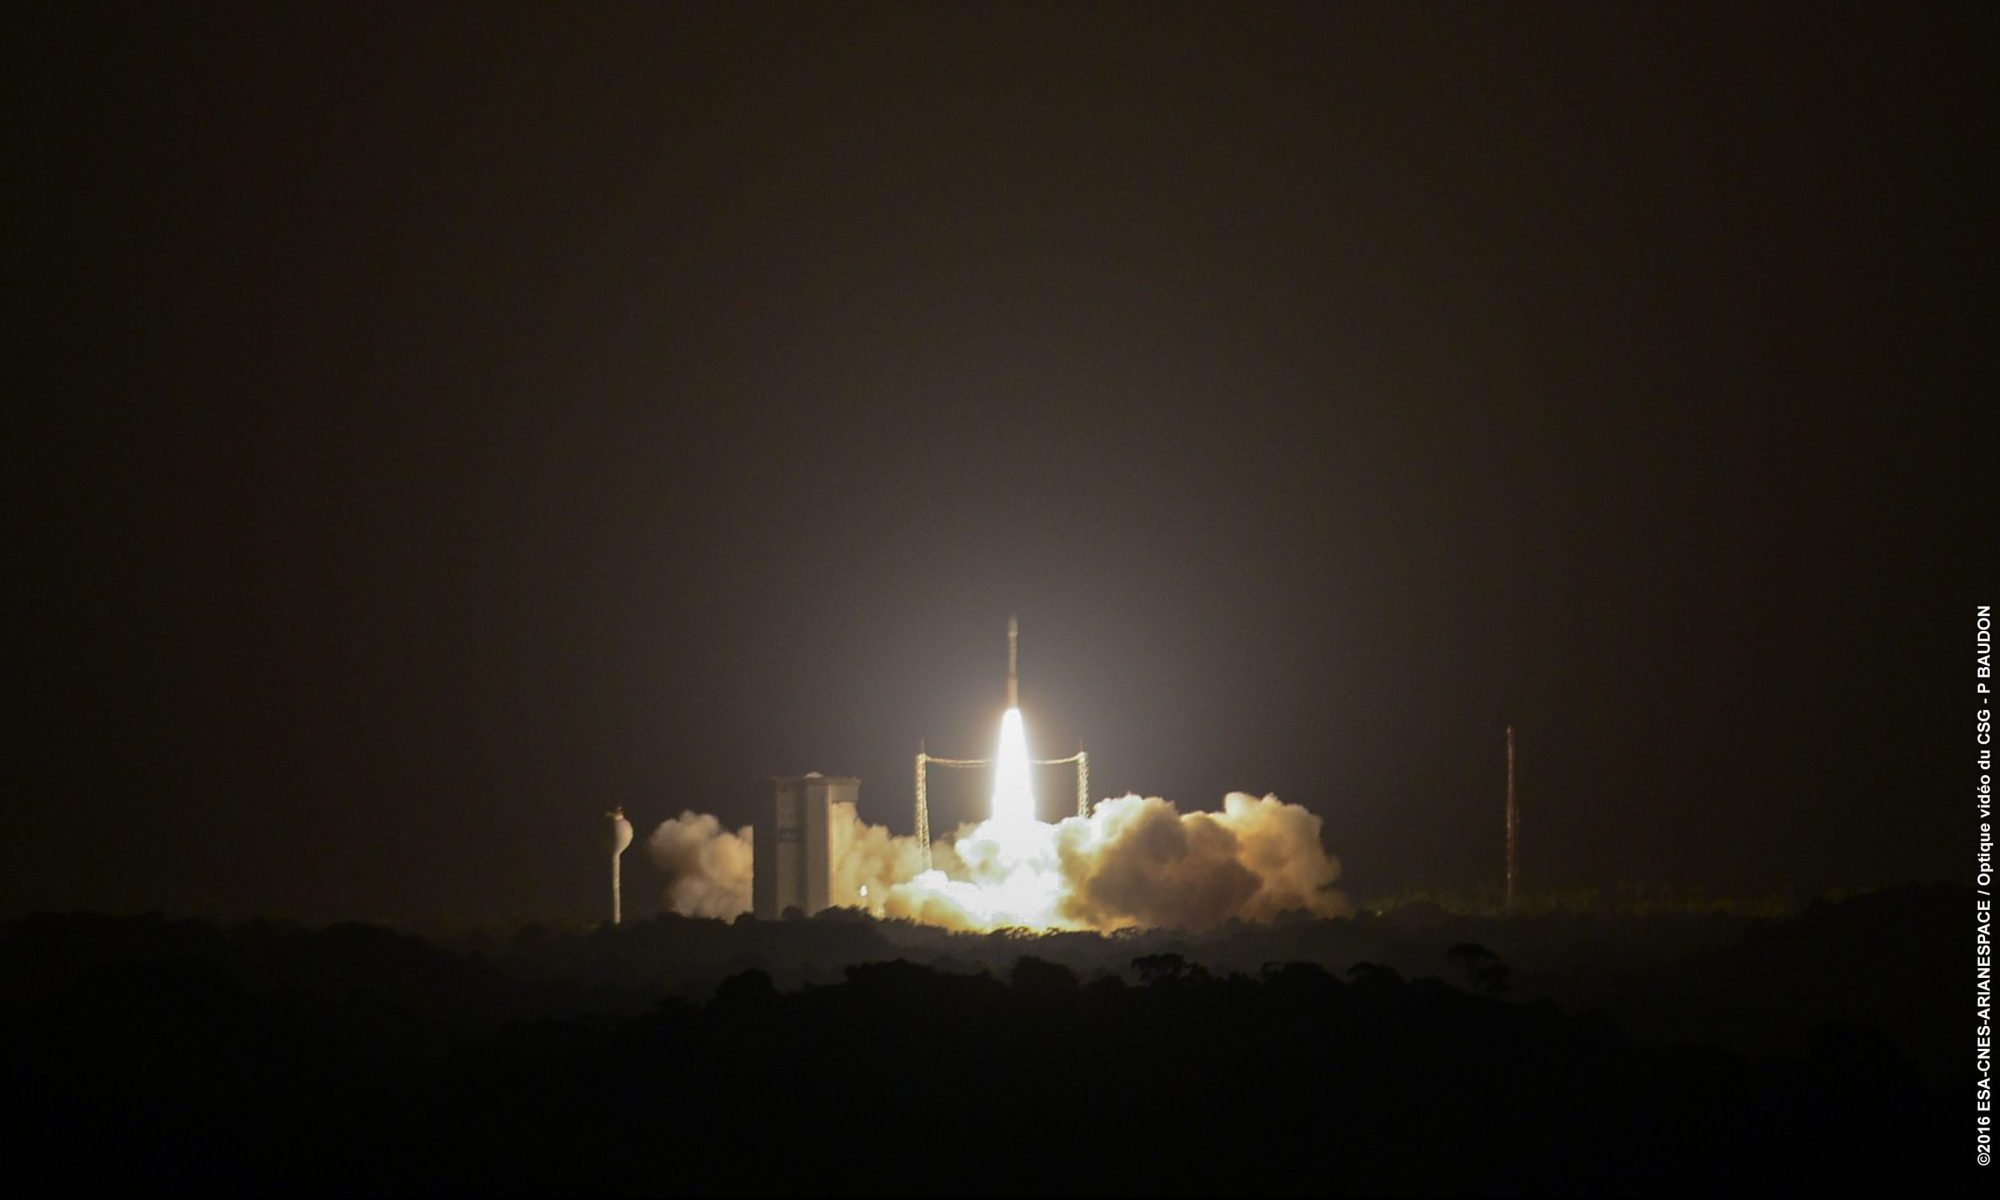 Arianespace's first Vega launch in 2016